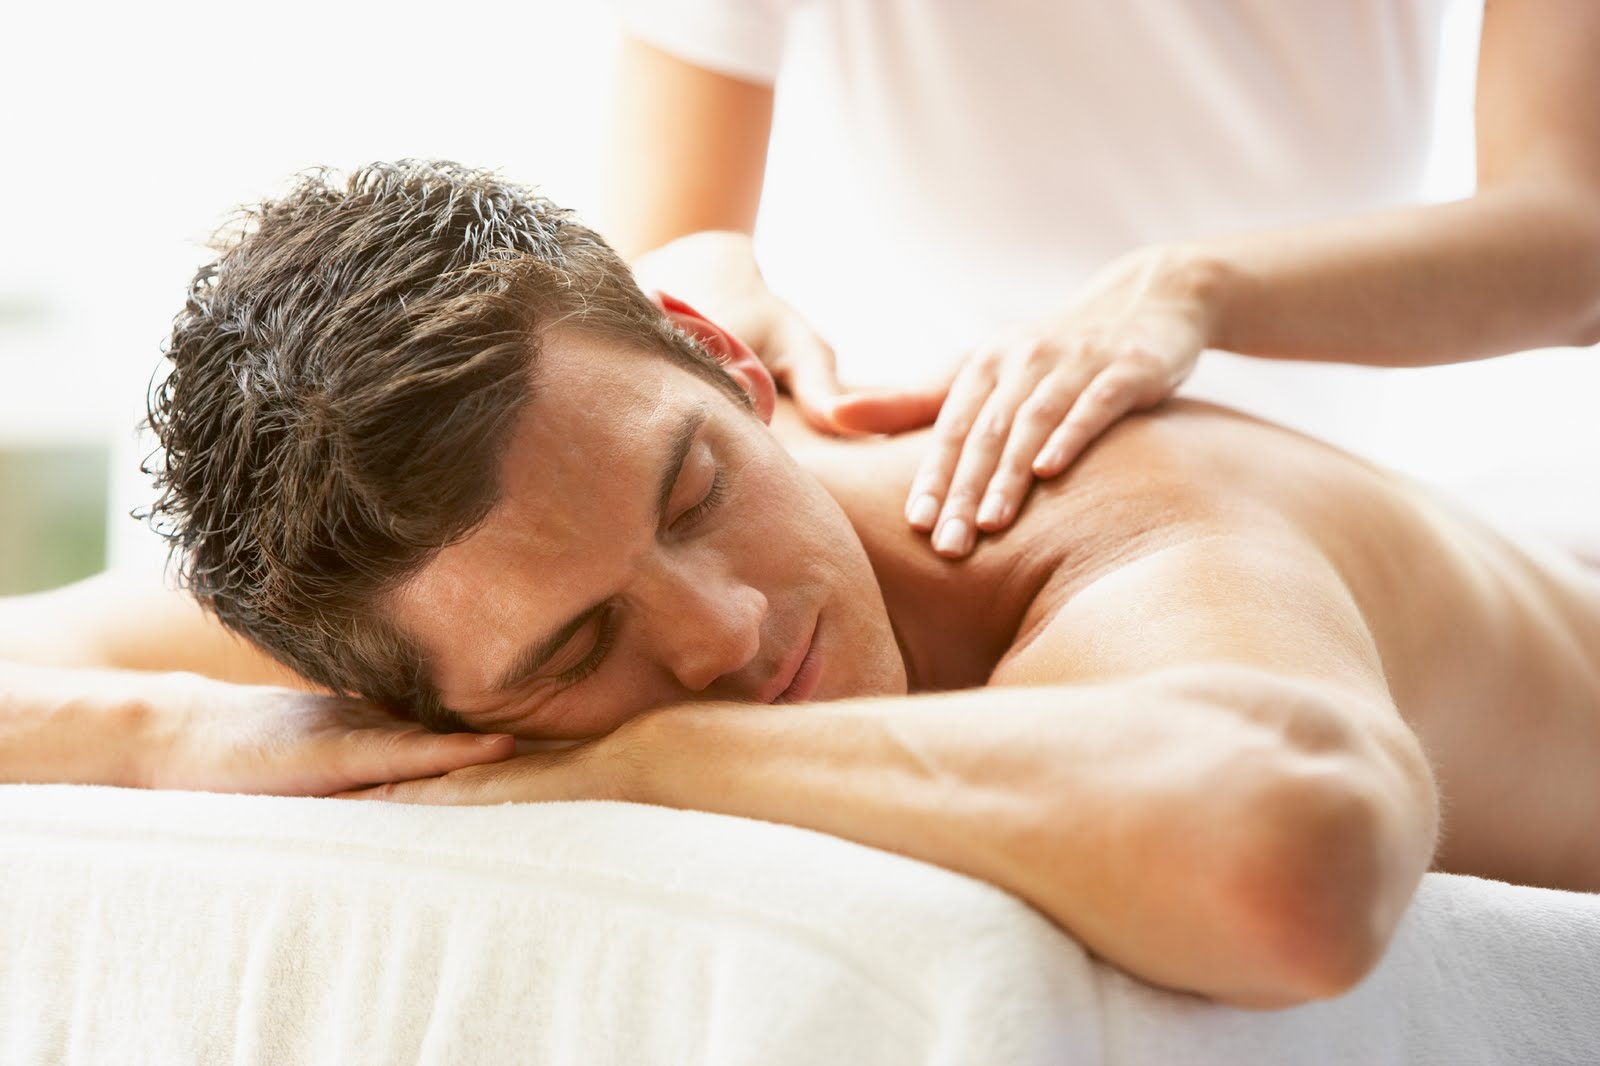 How to Get The Best Out of Your Massage